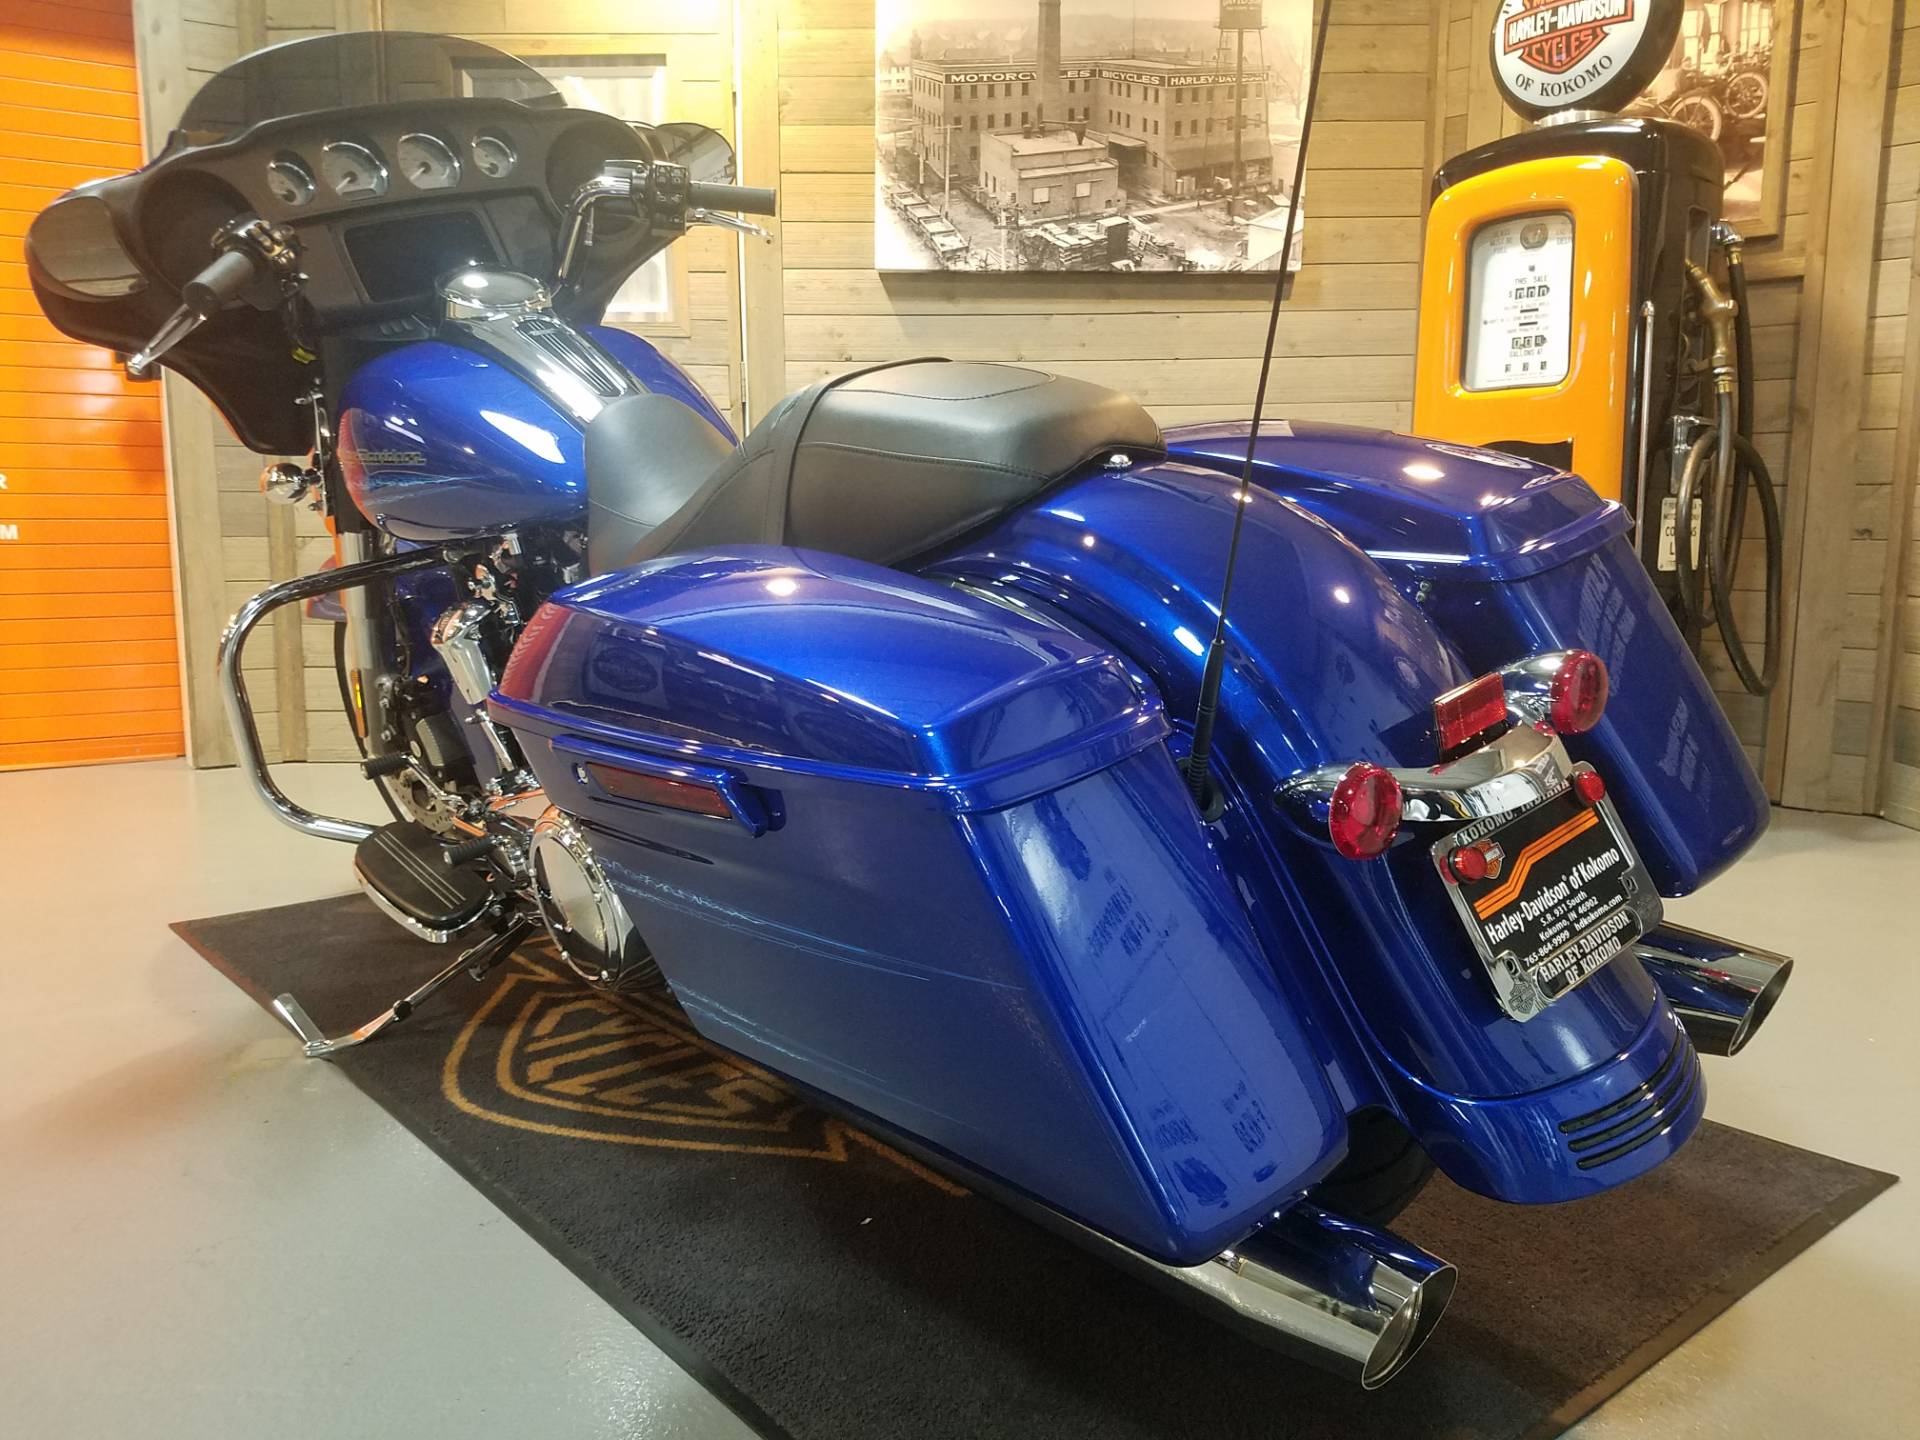 2019 Harley-Davidson Street Glide FLHX in Kokomo, Indiana - Photo 9